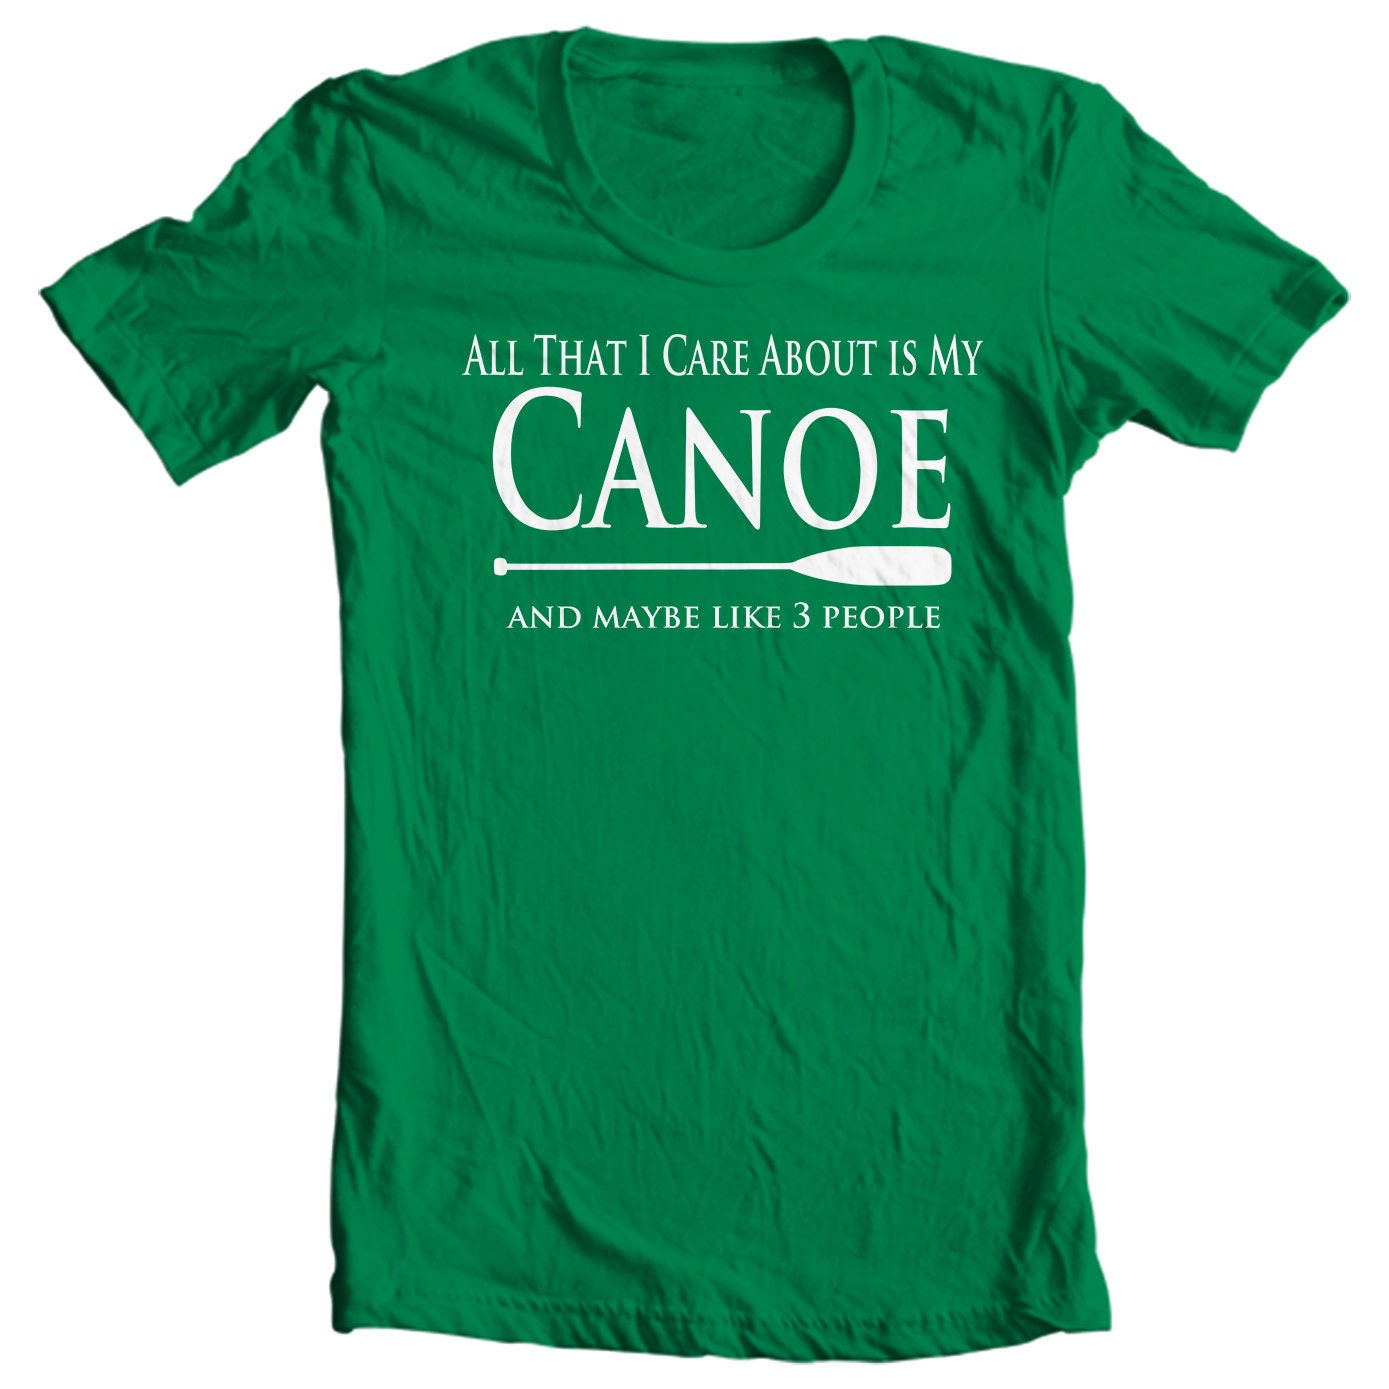 Canoe T-shirt - All That I Care About Is My Canoe And Maybe Like Three People T-shirt - Paddle Life Canoeing T-shirt